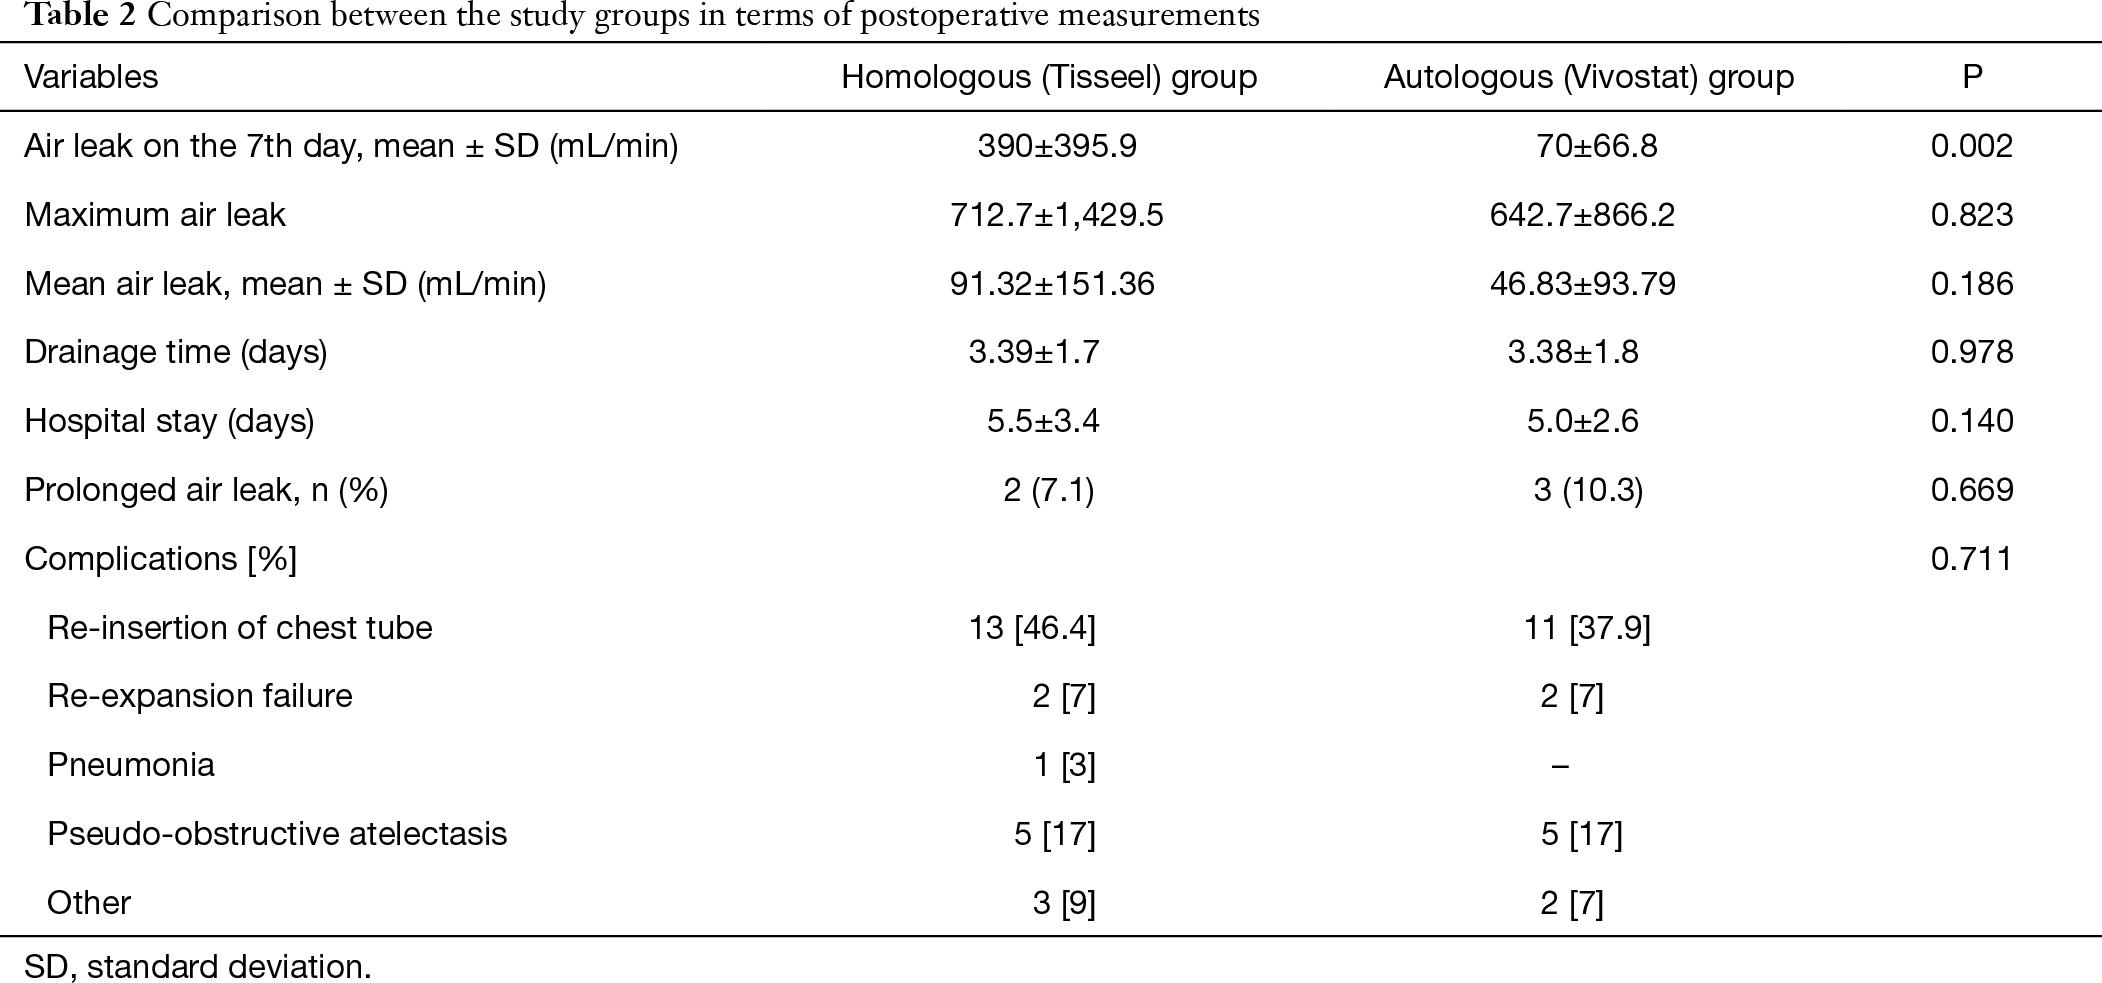 A prospective randomized trial comparing homologous and